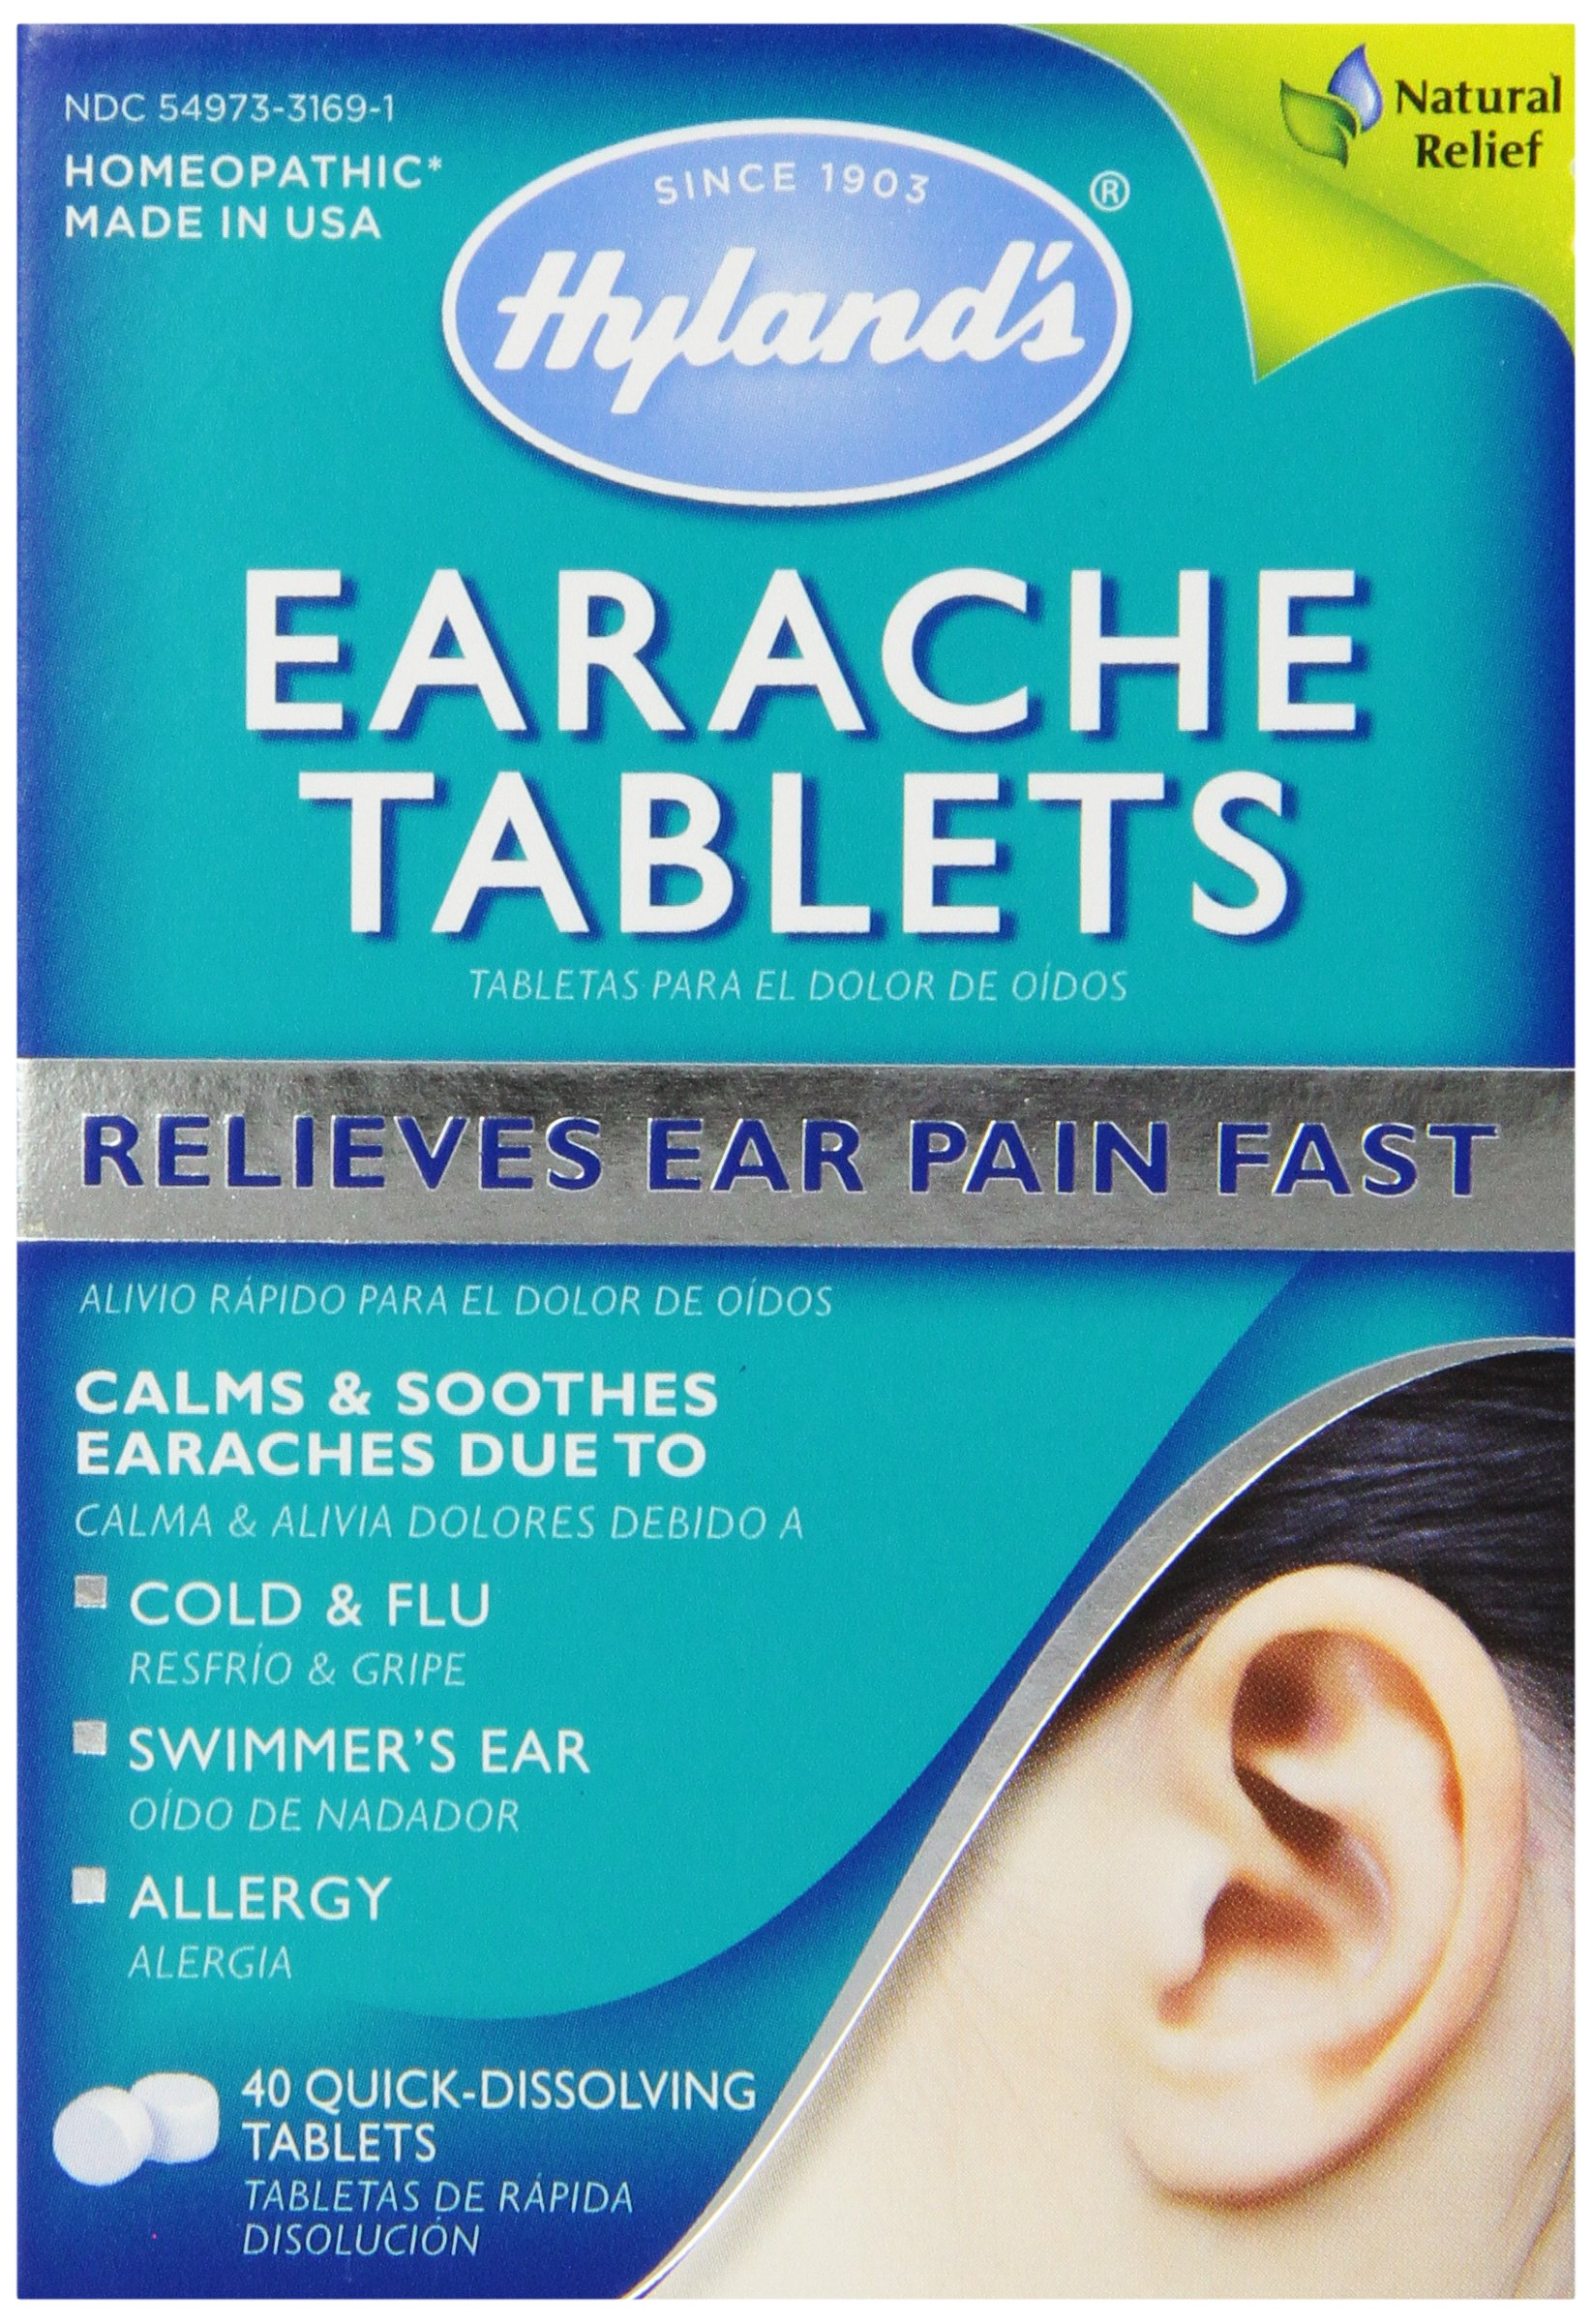 Hyland's Earache Tablets, Natural Relief of Cold & Flu Earaches, Swimmers Ear, and Allergies, 40 Count